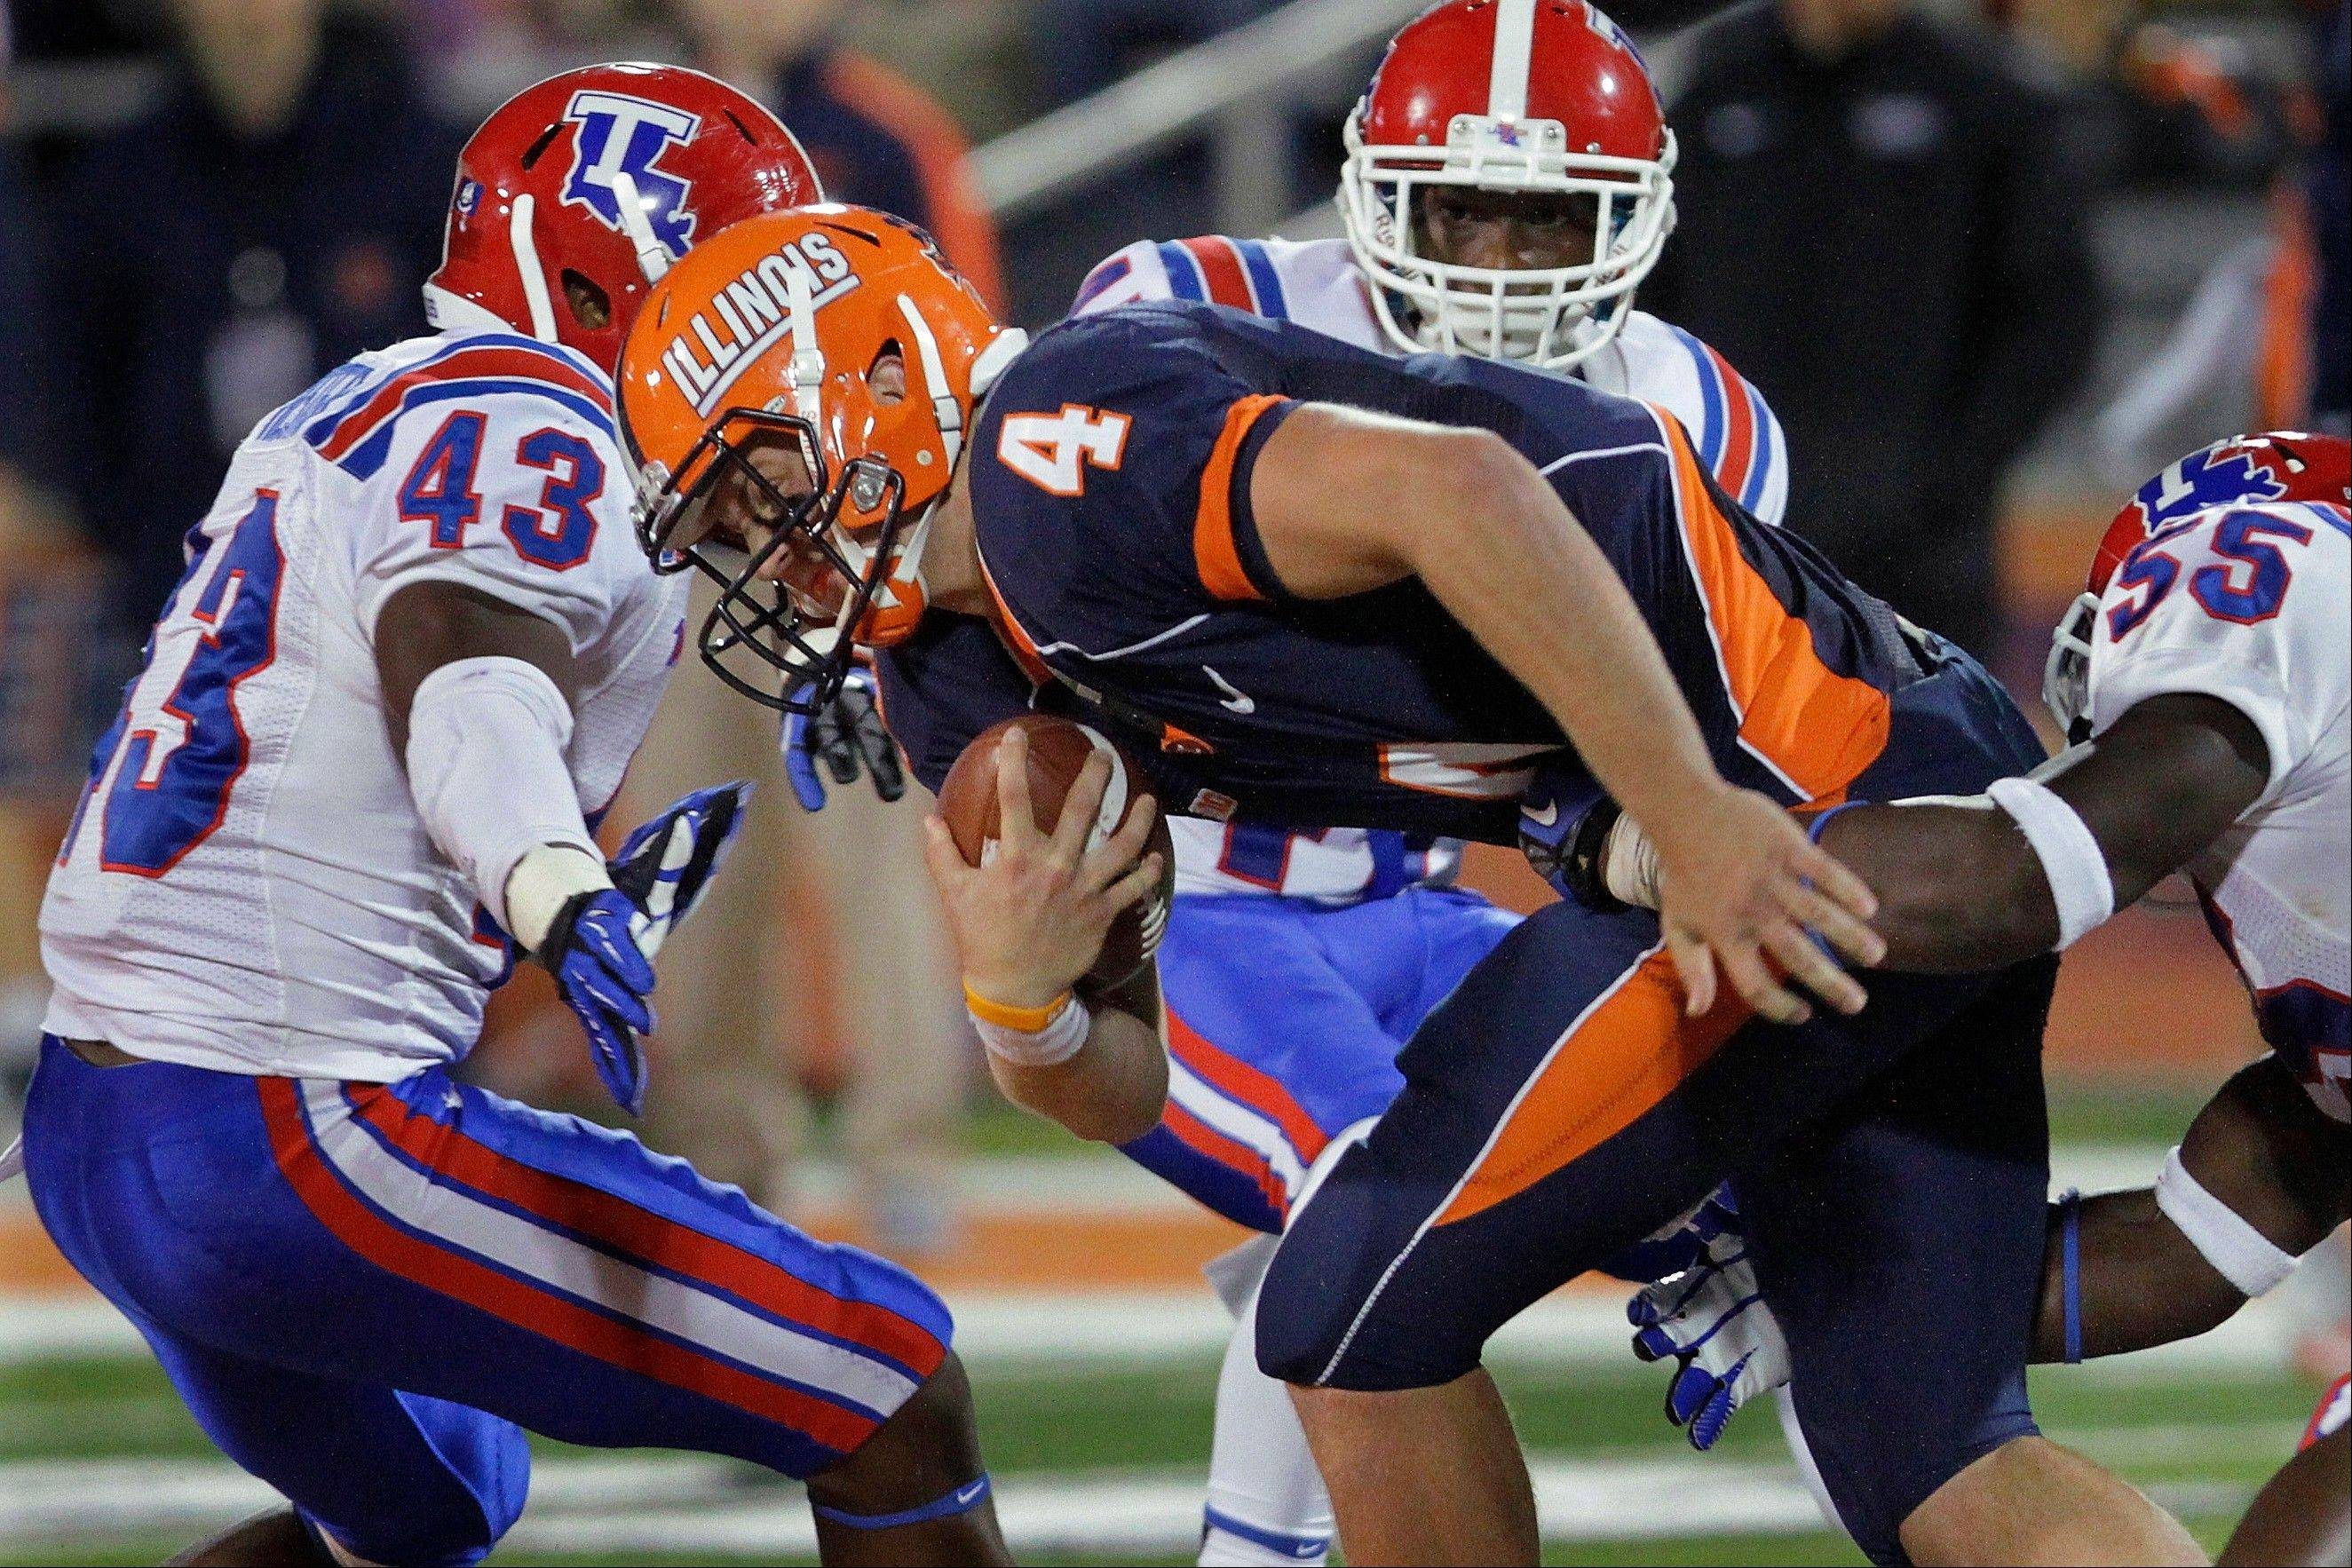 Associated Press/2012Illinois quarterback Reilly O'Toole (4) led the Illini to a nonconference win last season over Louisiana Tech, but he struggled in some Big Ten games.